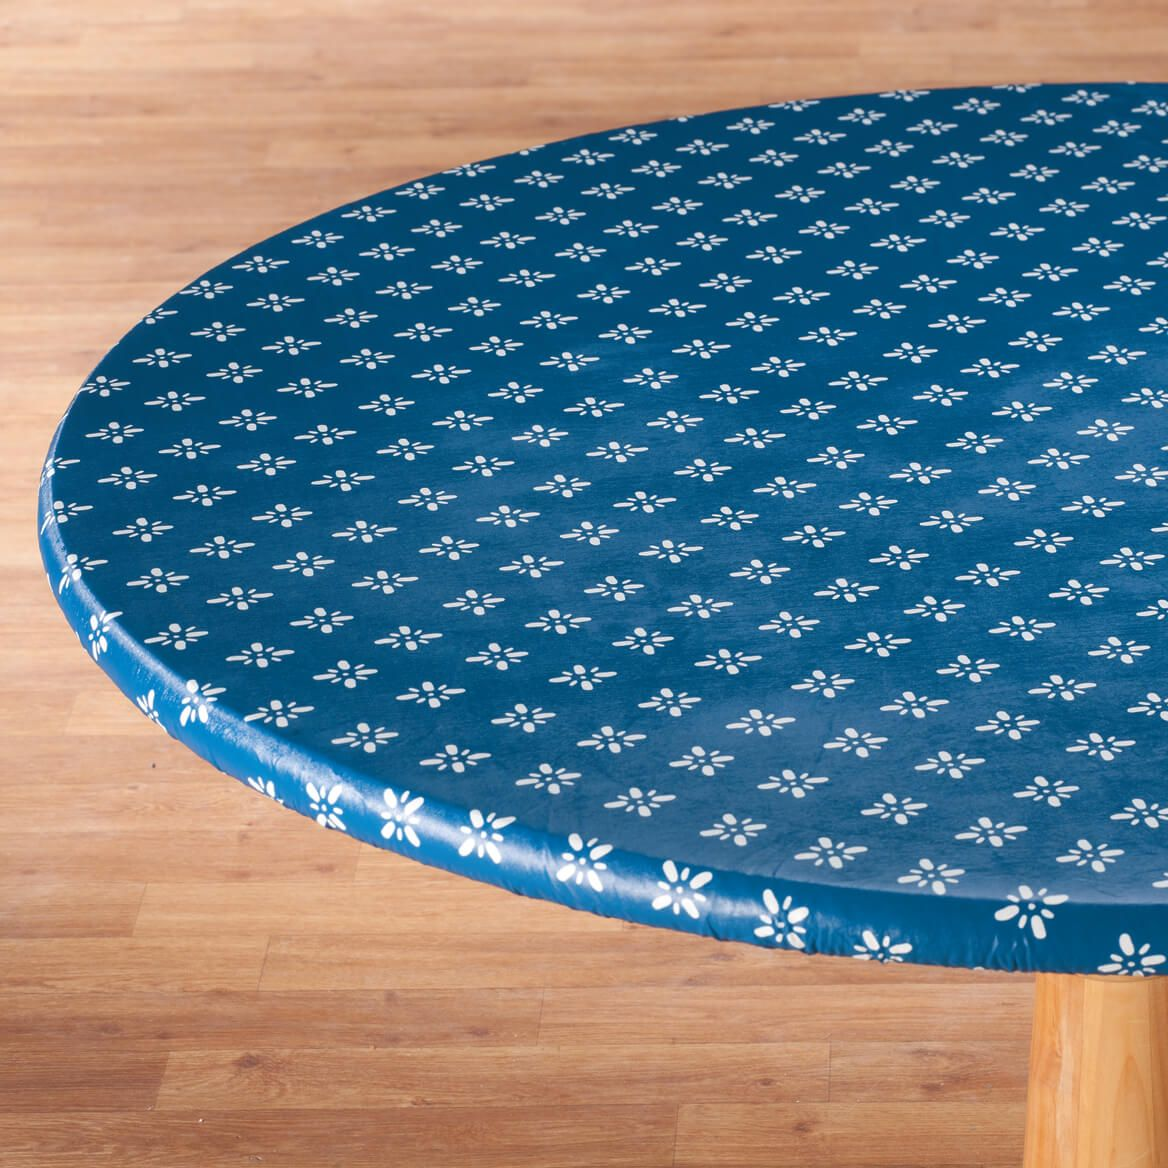 Heritage Vinyl Elasticized Table Cover By Home-Style Kitchen™-355910